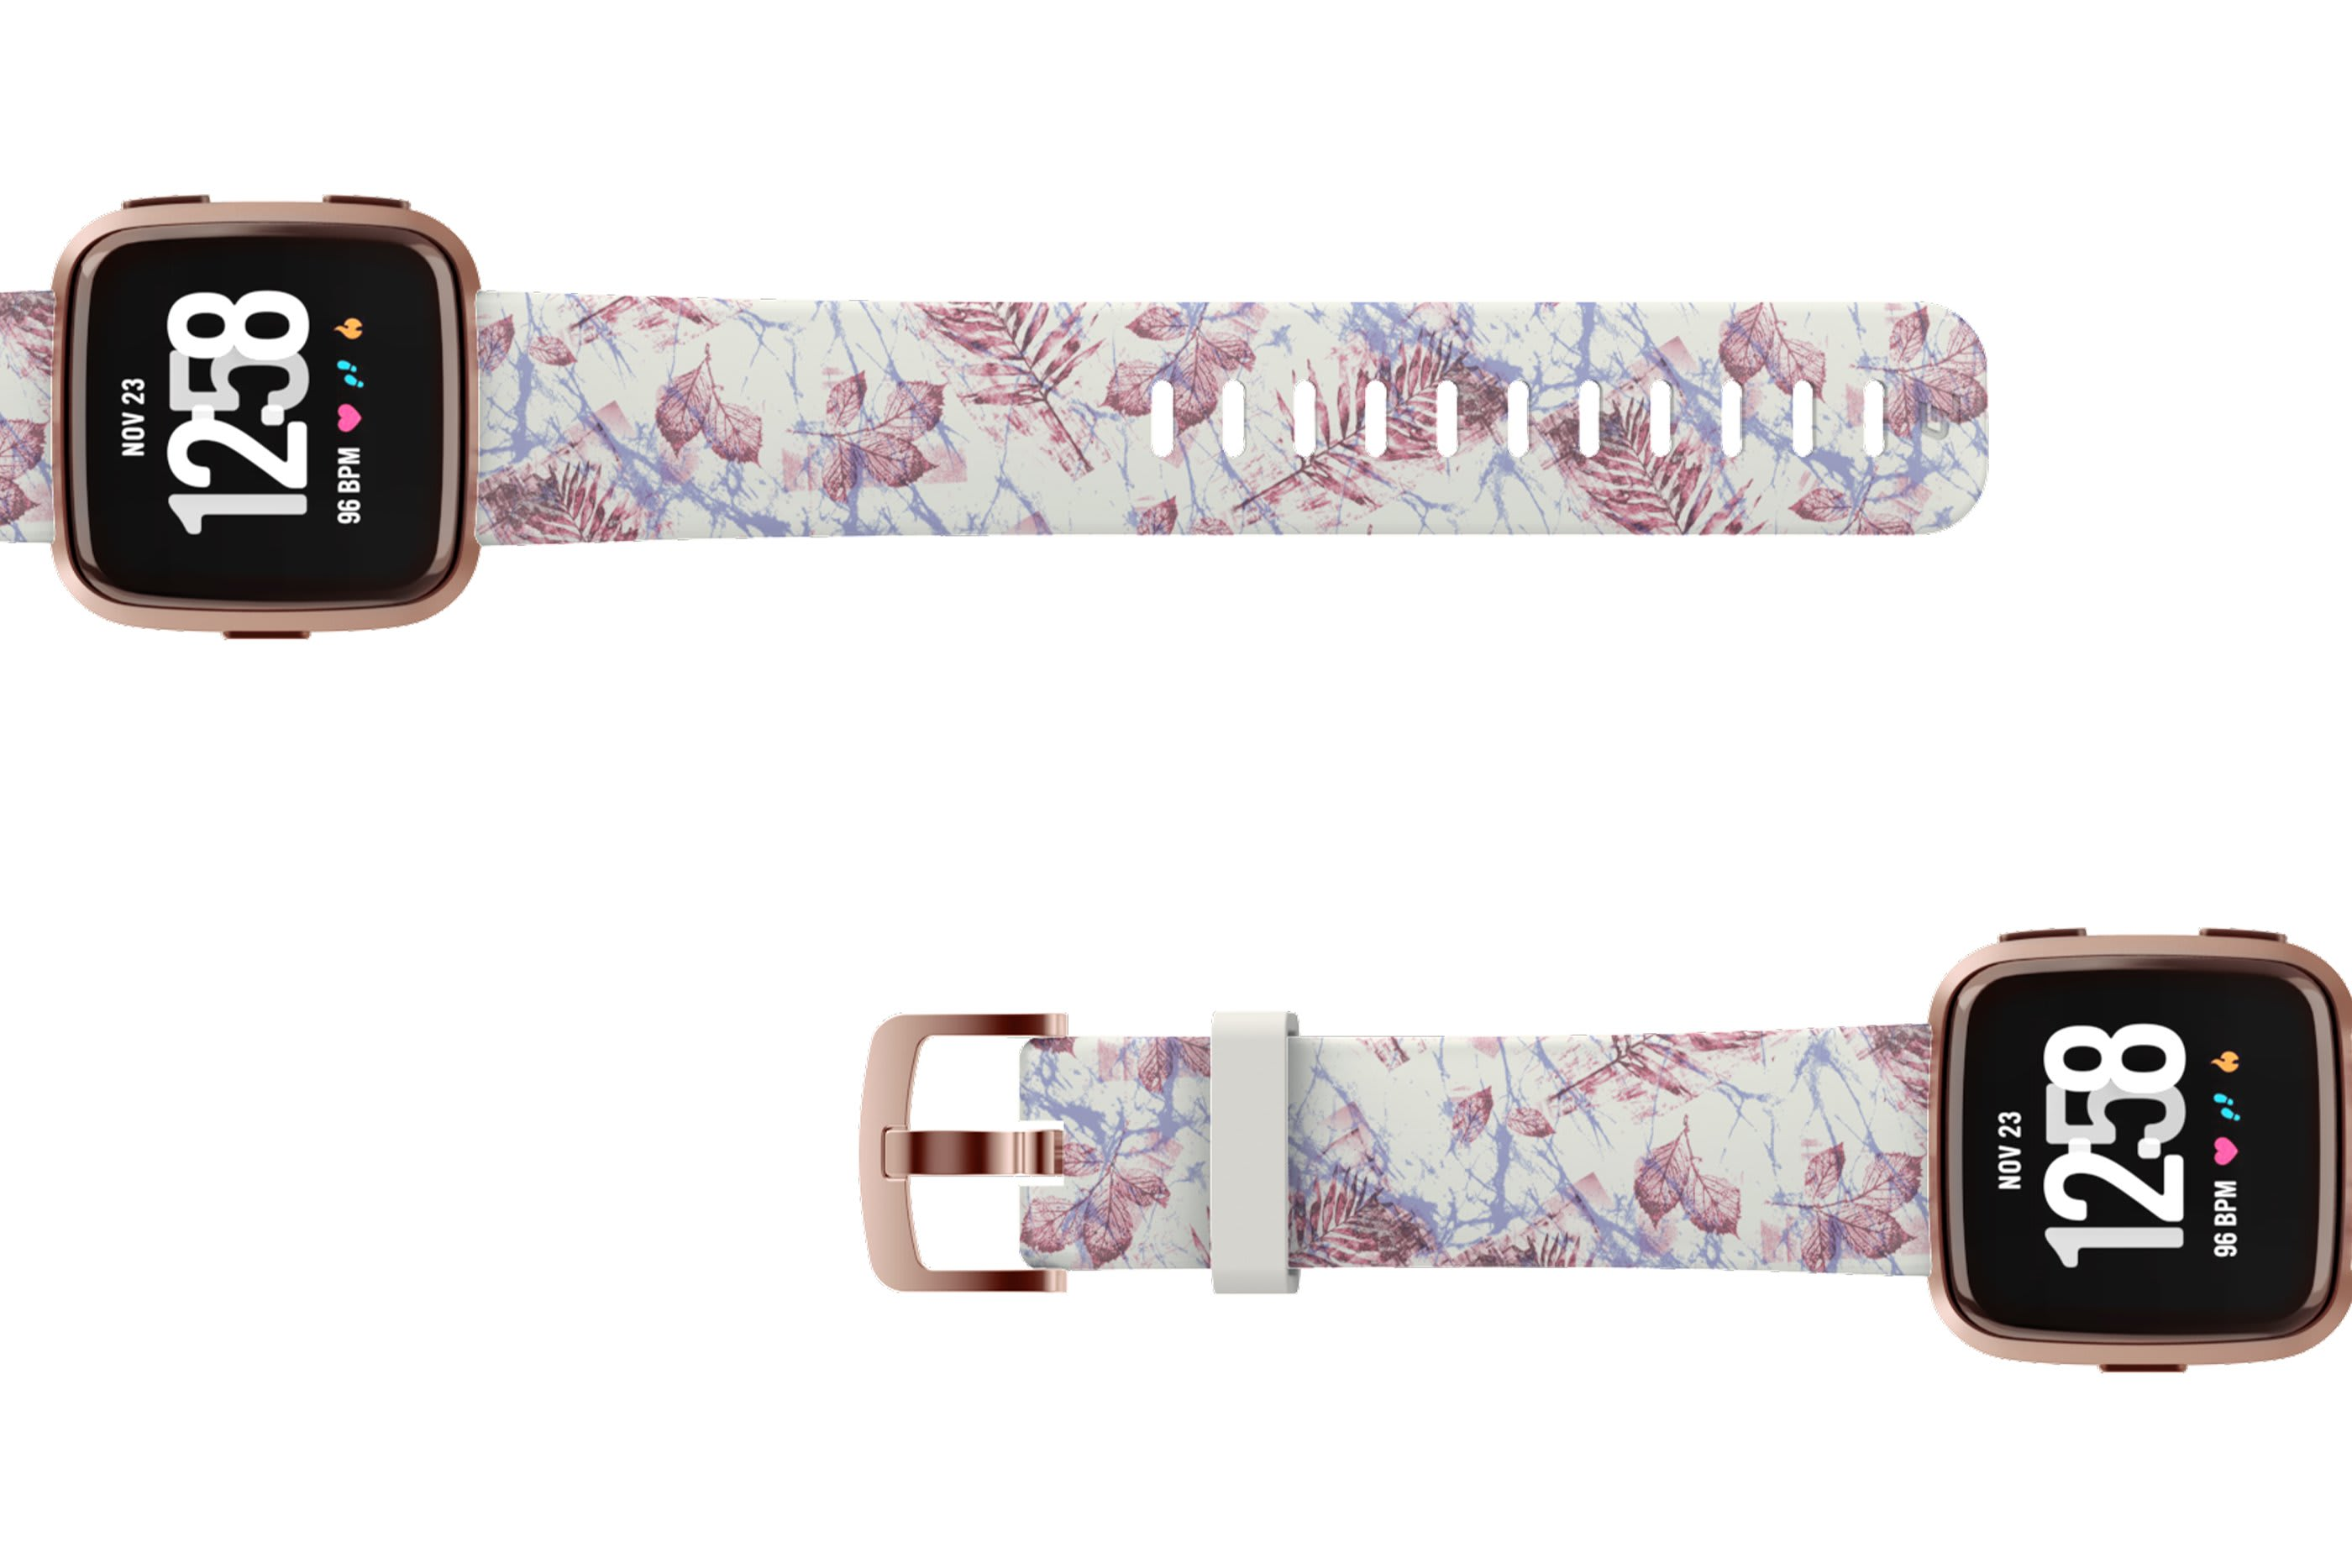 Breeze Fitbit Versa watch bandwith rose gold hardware viewed top down